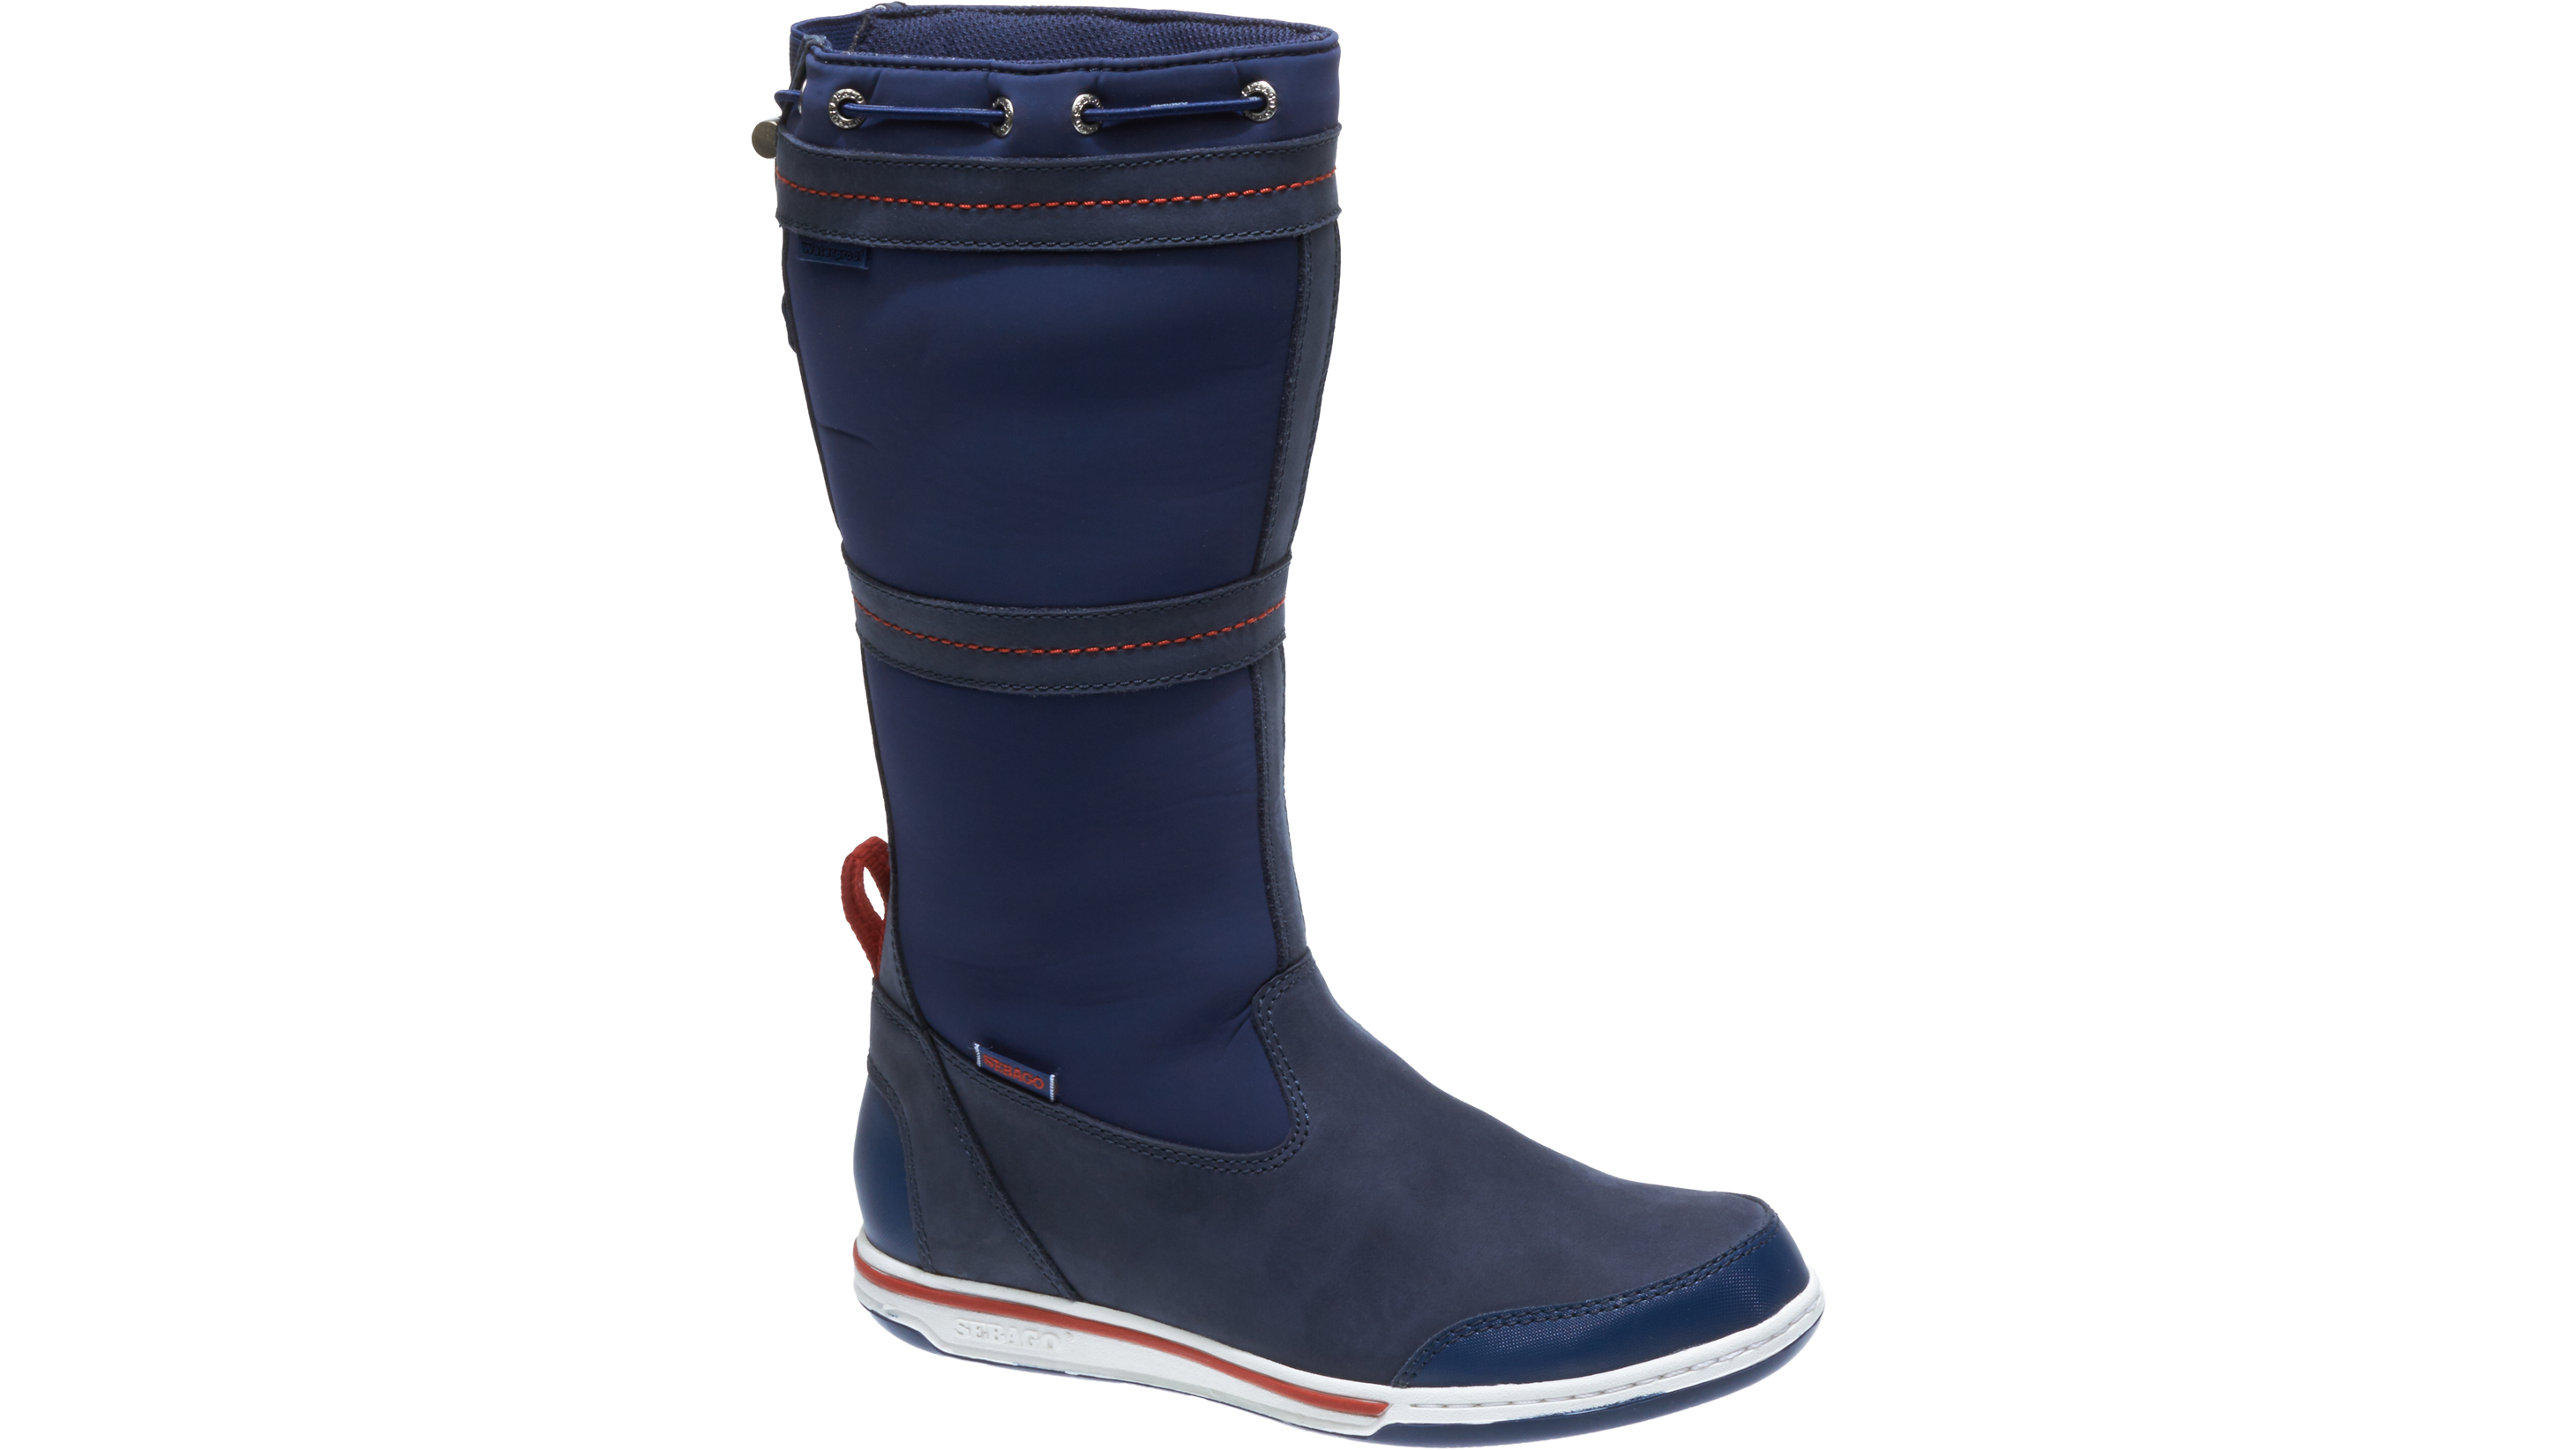 New Kit: Sebago Triton sailing boots